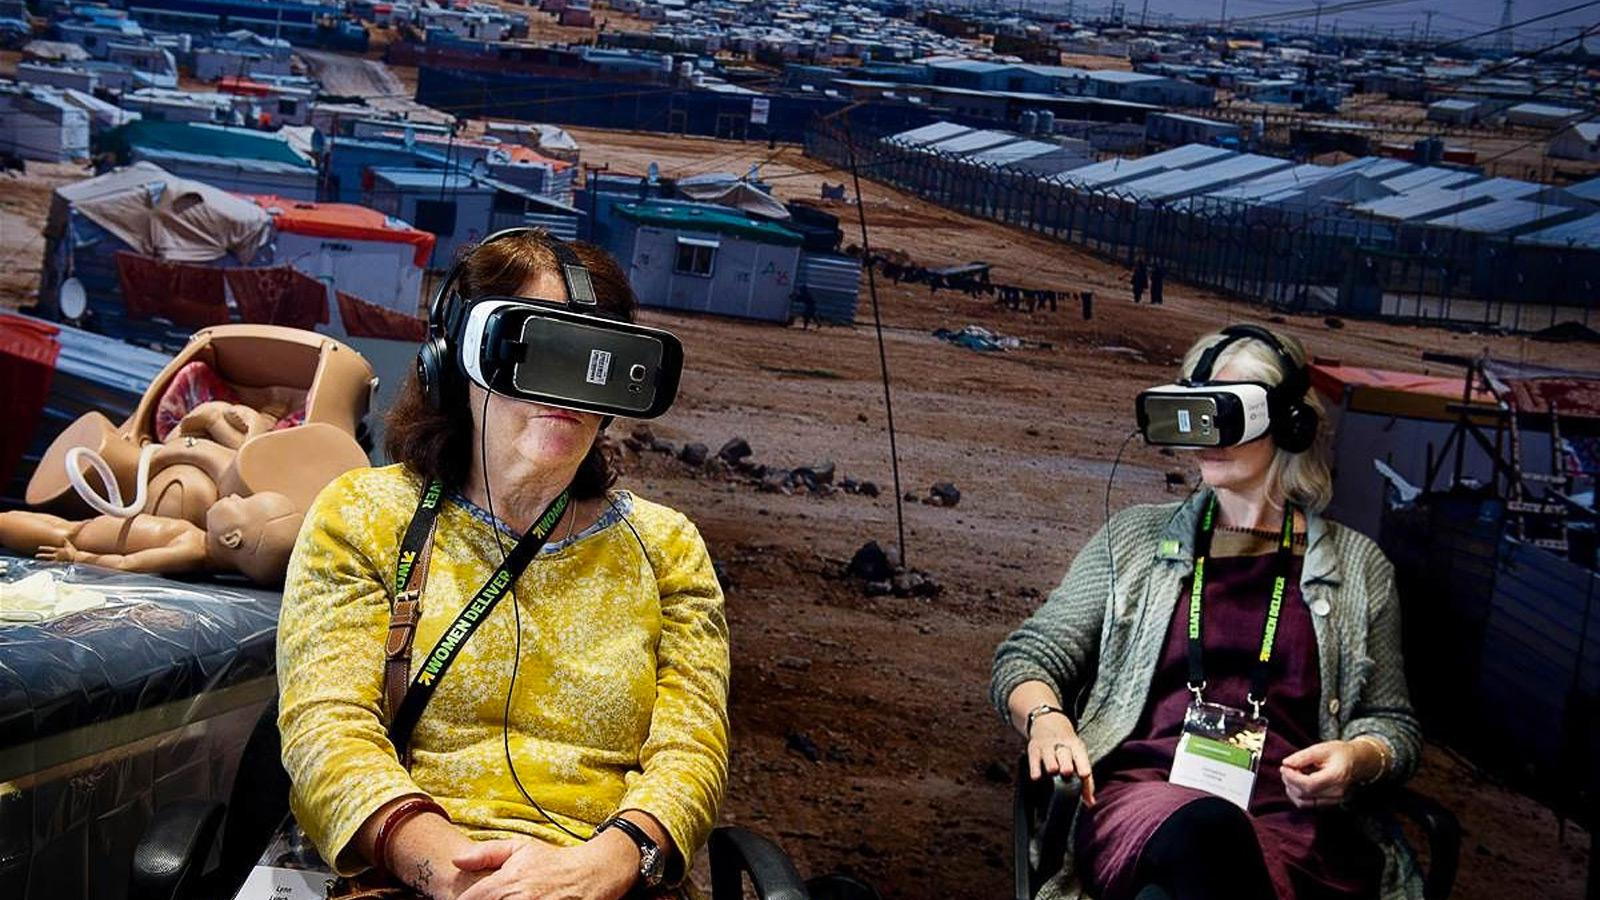 VR users projected in a 360 view of a refugees camp